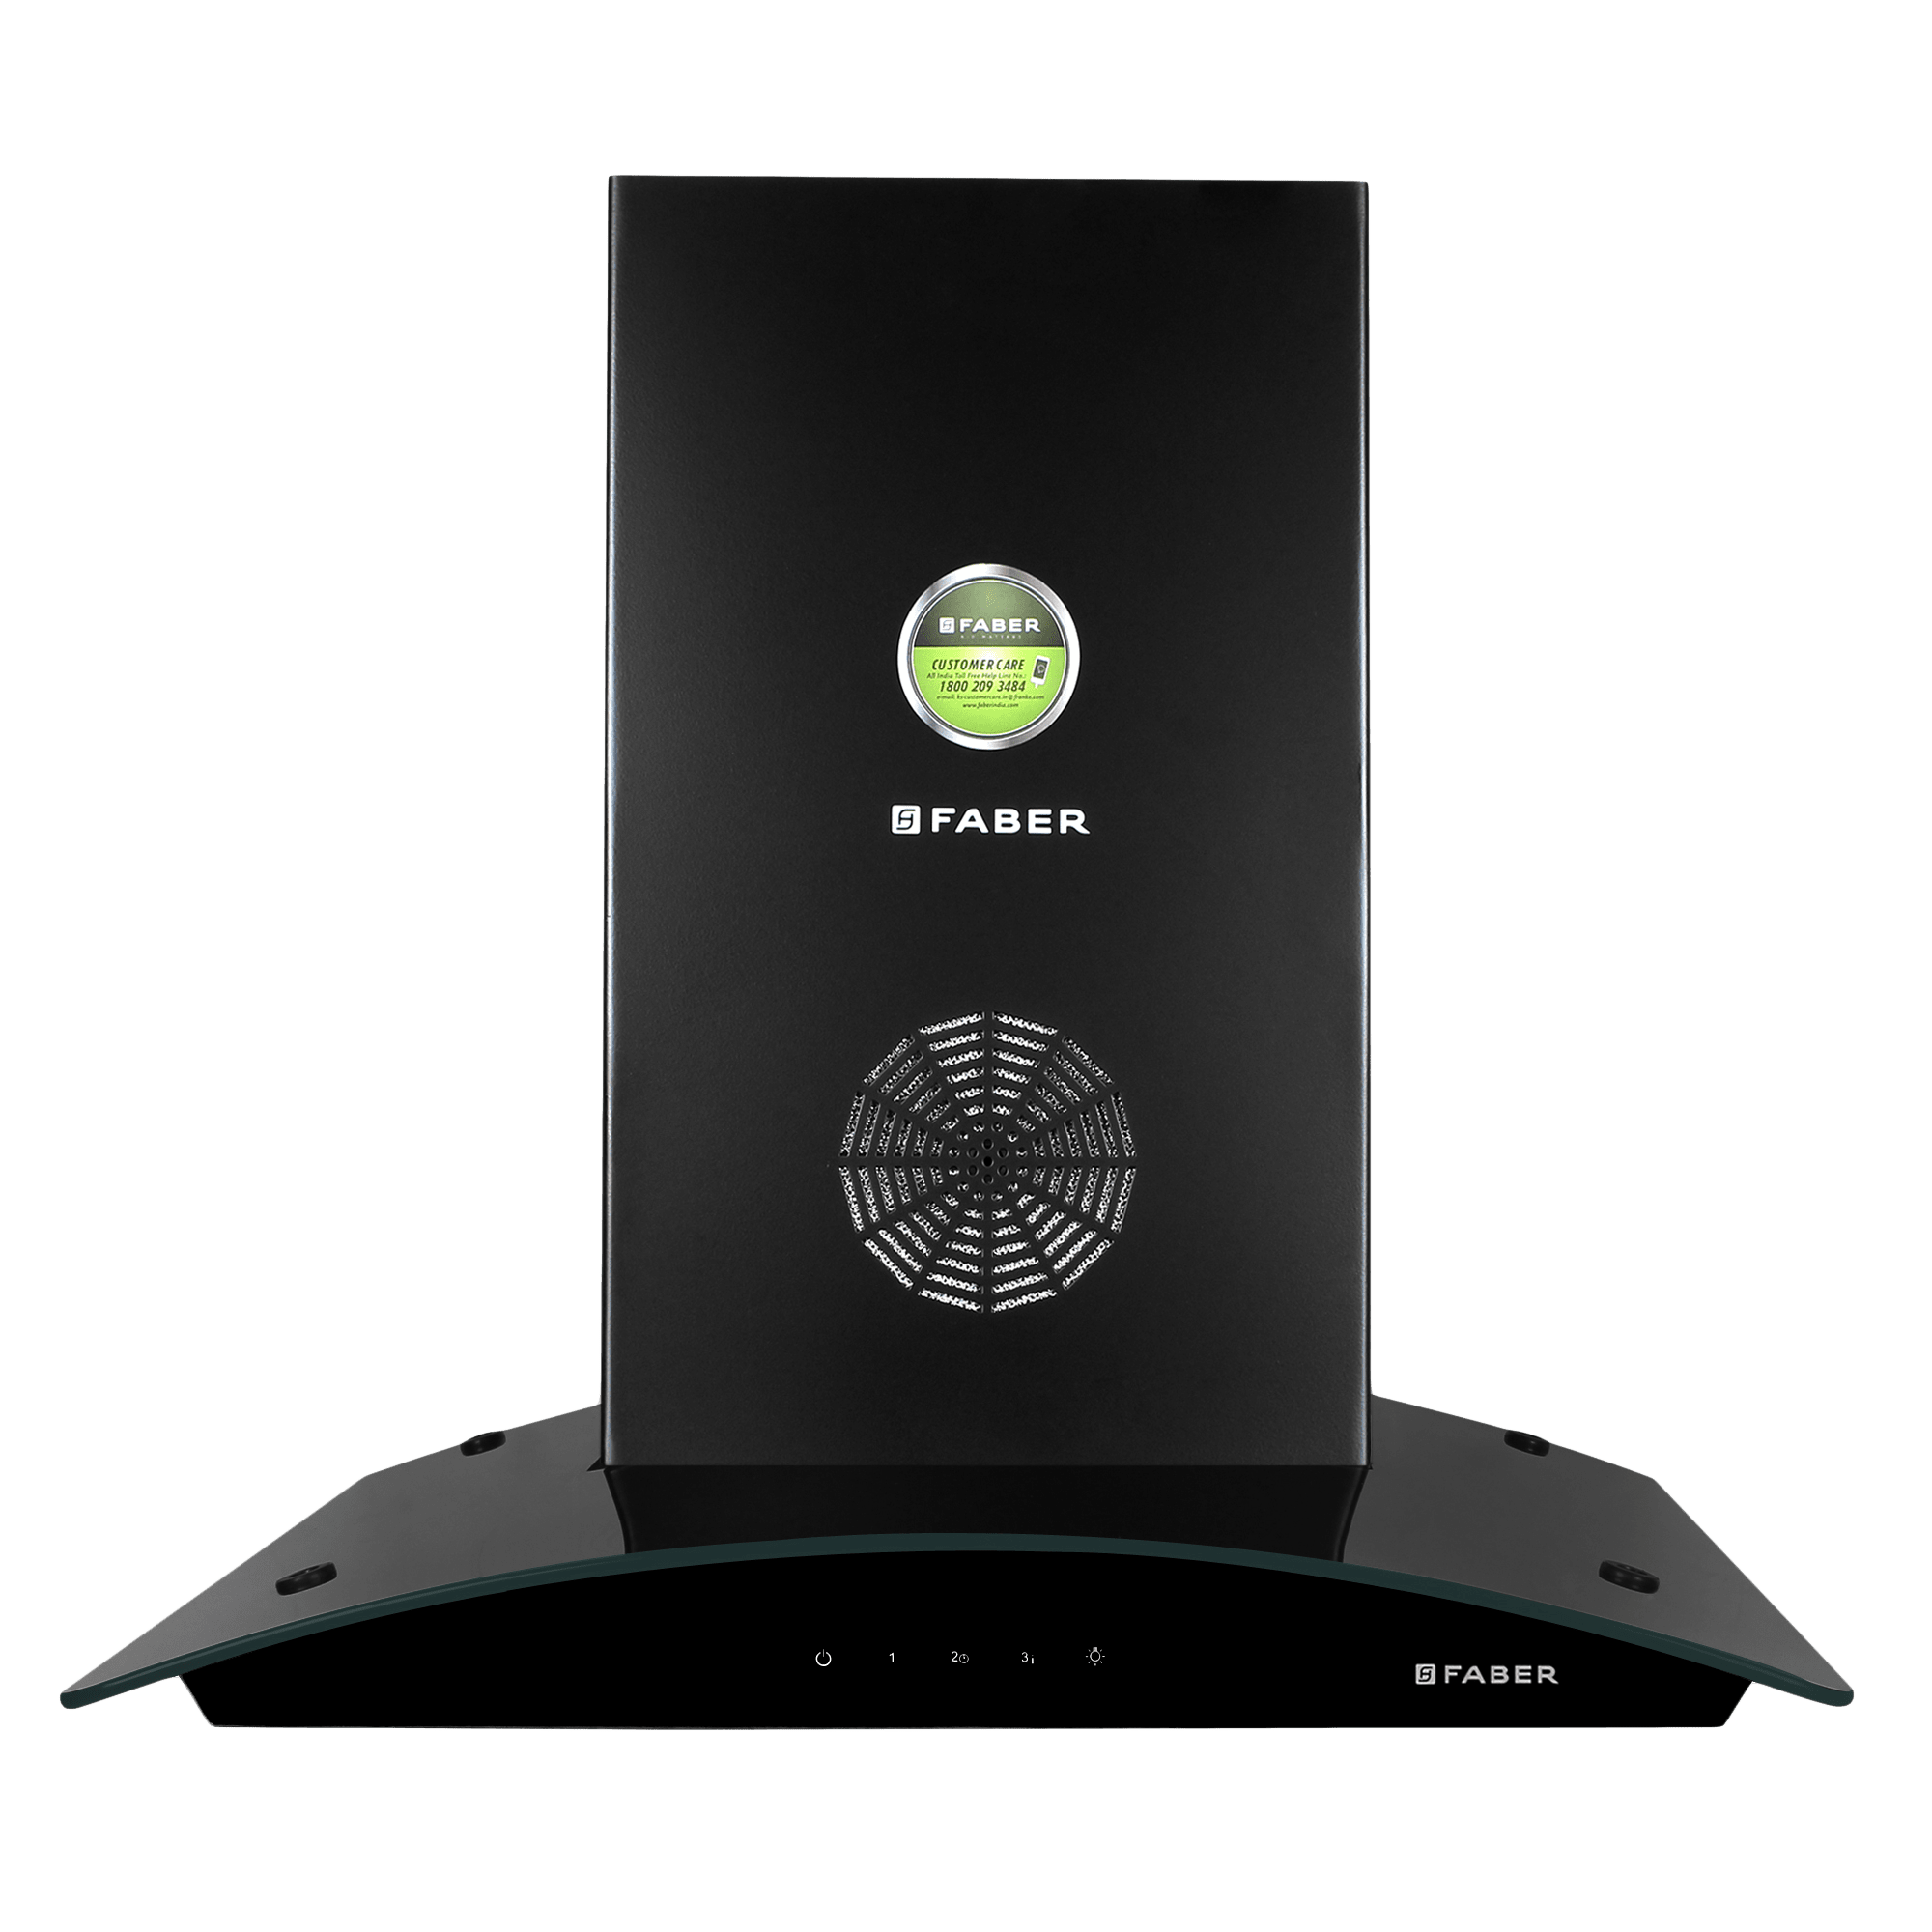 Faber Feel 3D Plus Max T2S2 1350 m³/hr 60cm Wall Mount Chimney (3 Layer Baffle Filters, 325.0629.064, Black)